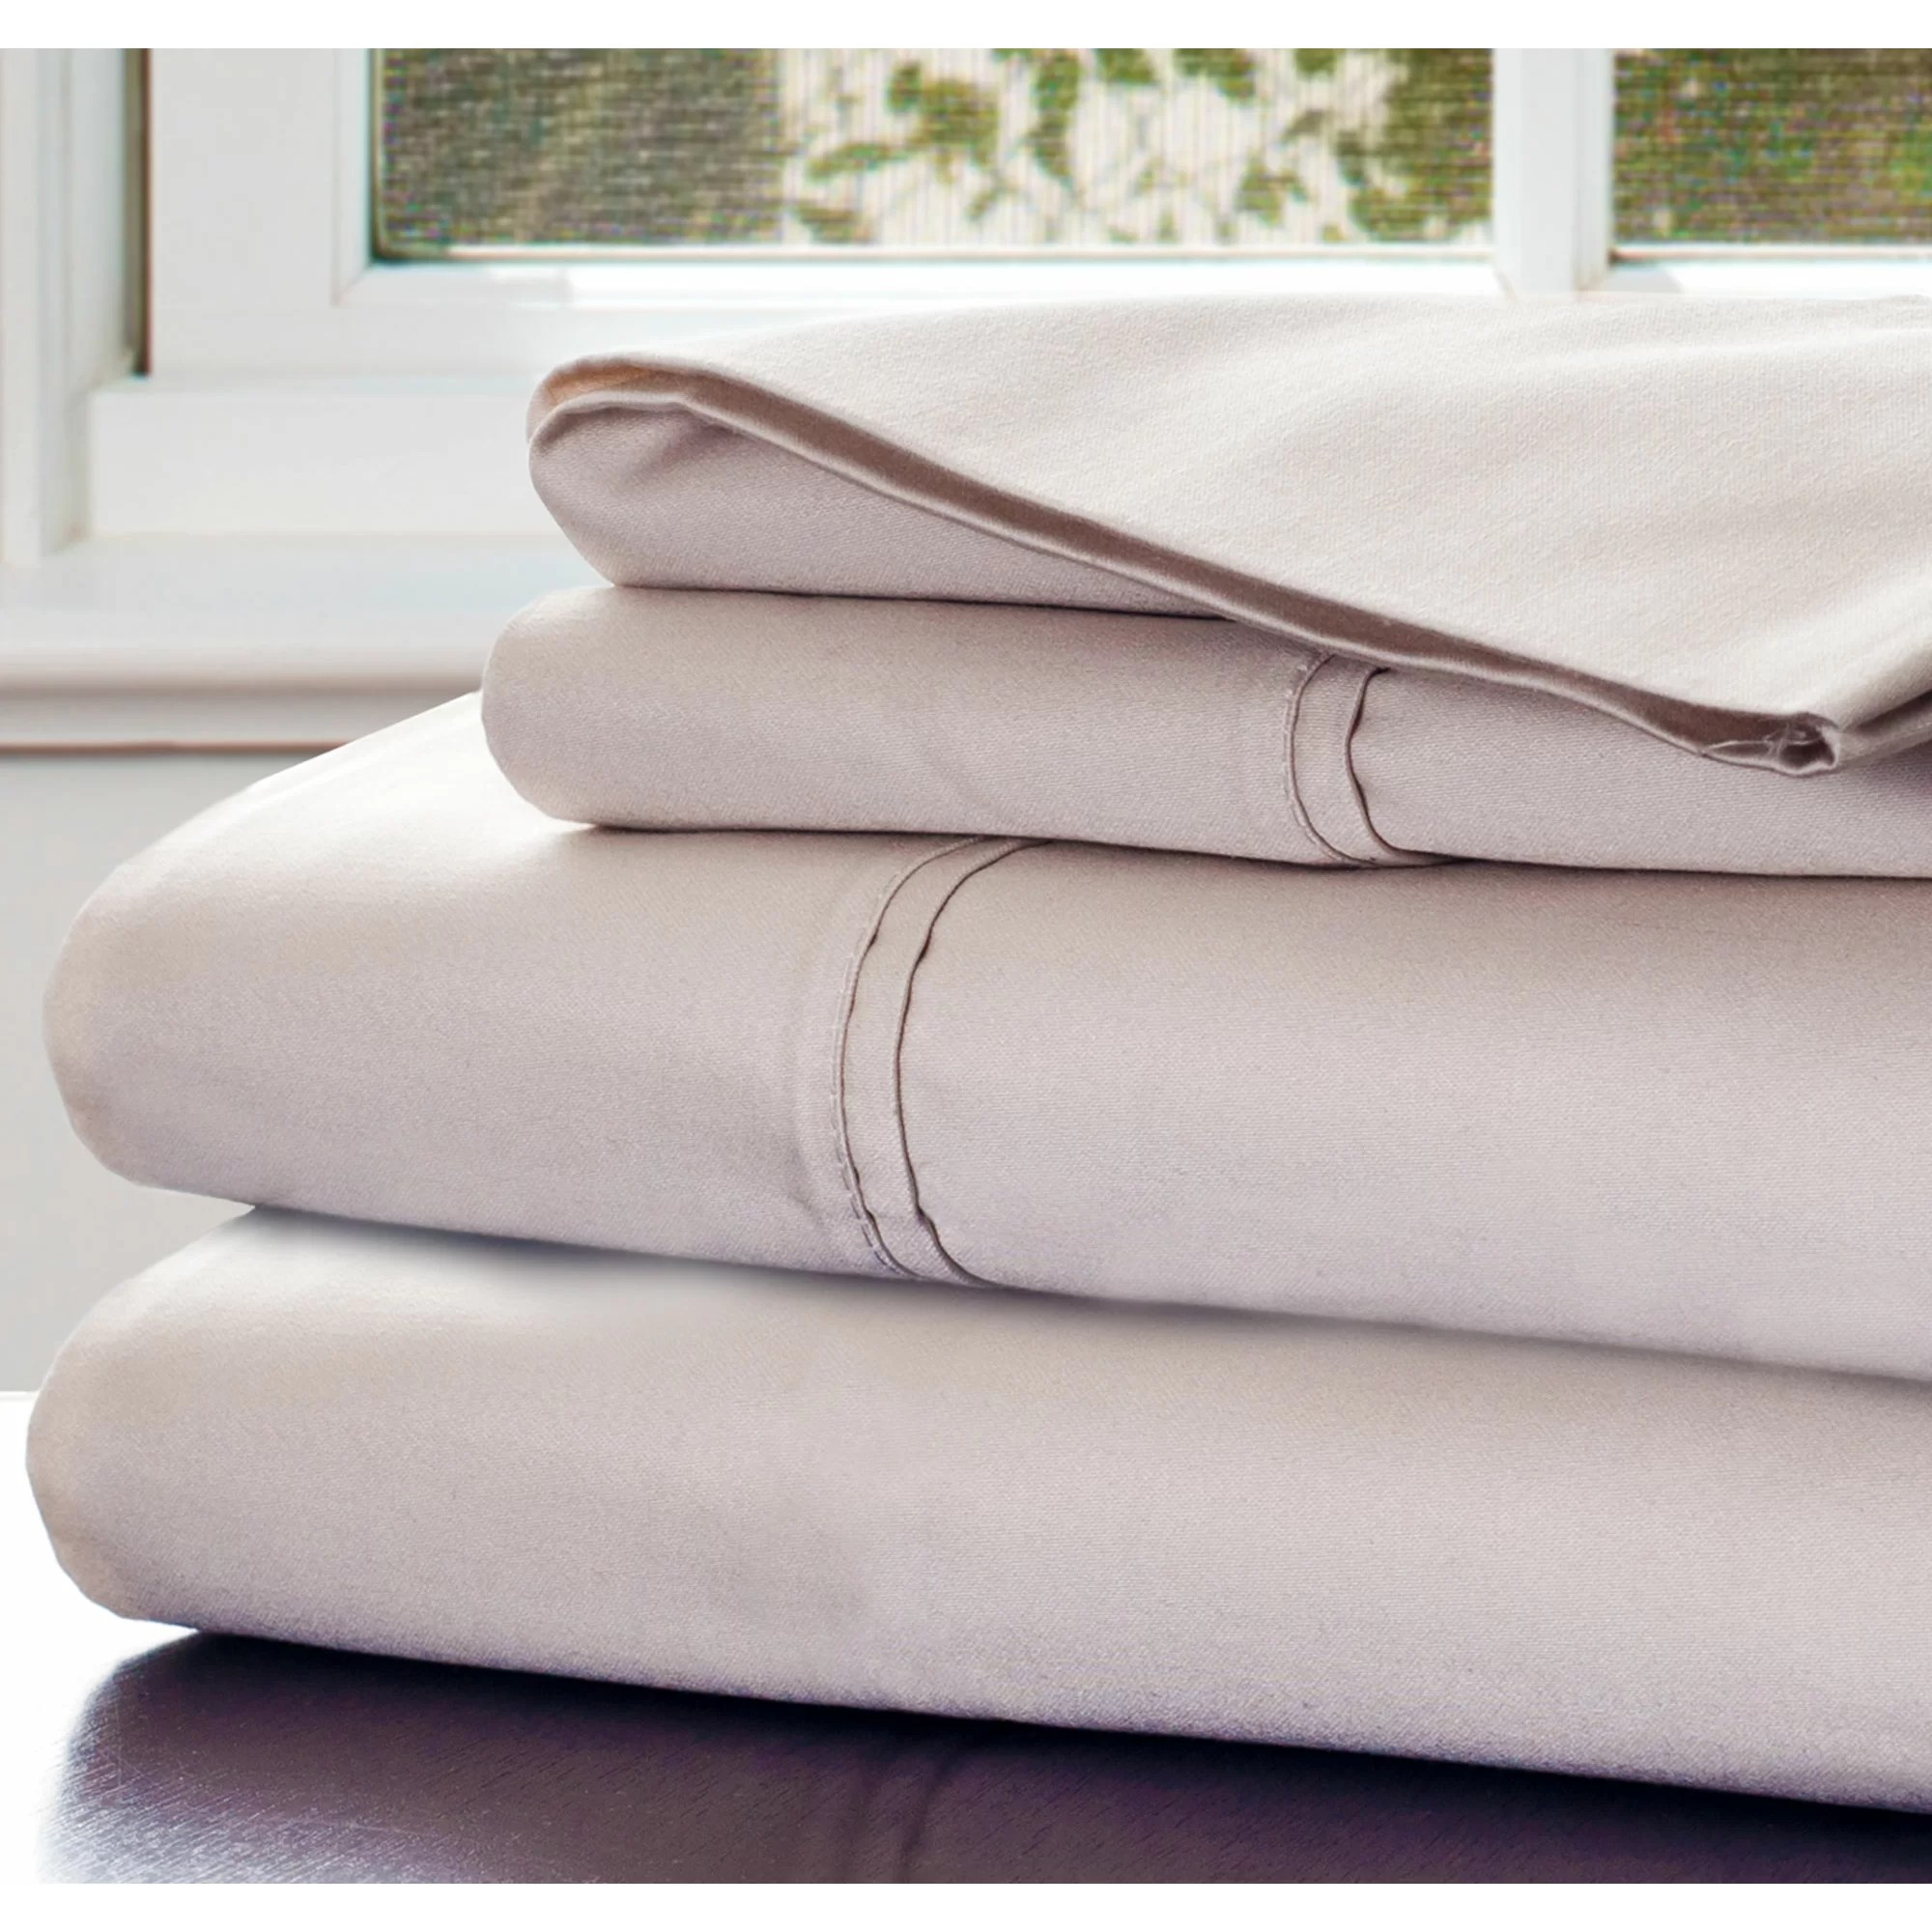 1000 Thread Count Sheets King Plyh 1000 Thread Count Sheet Set Wayfair